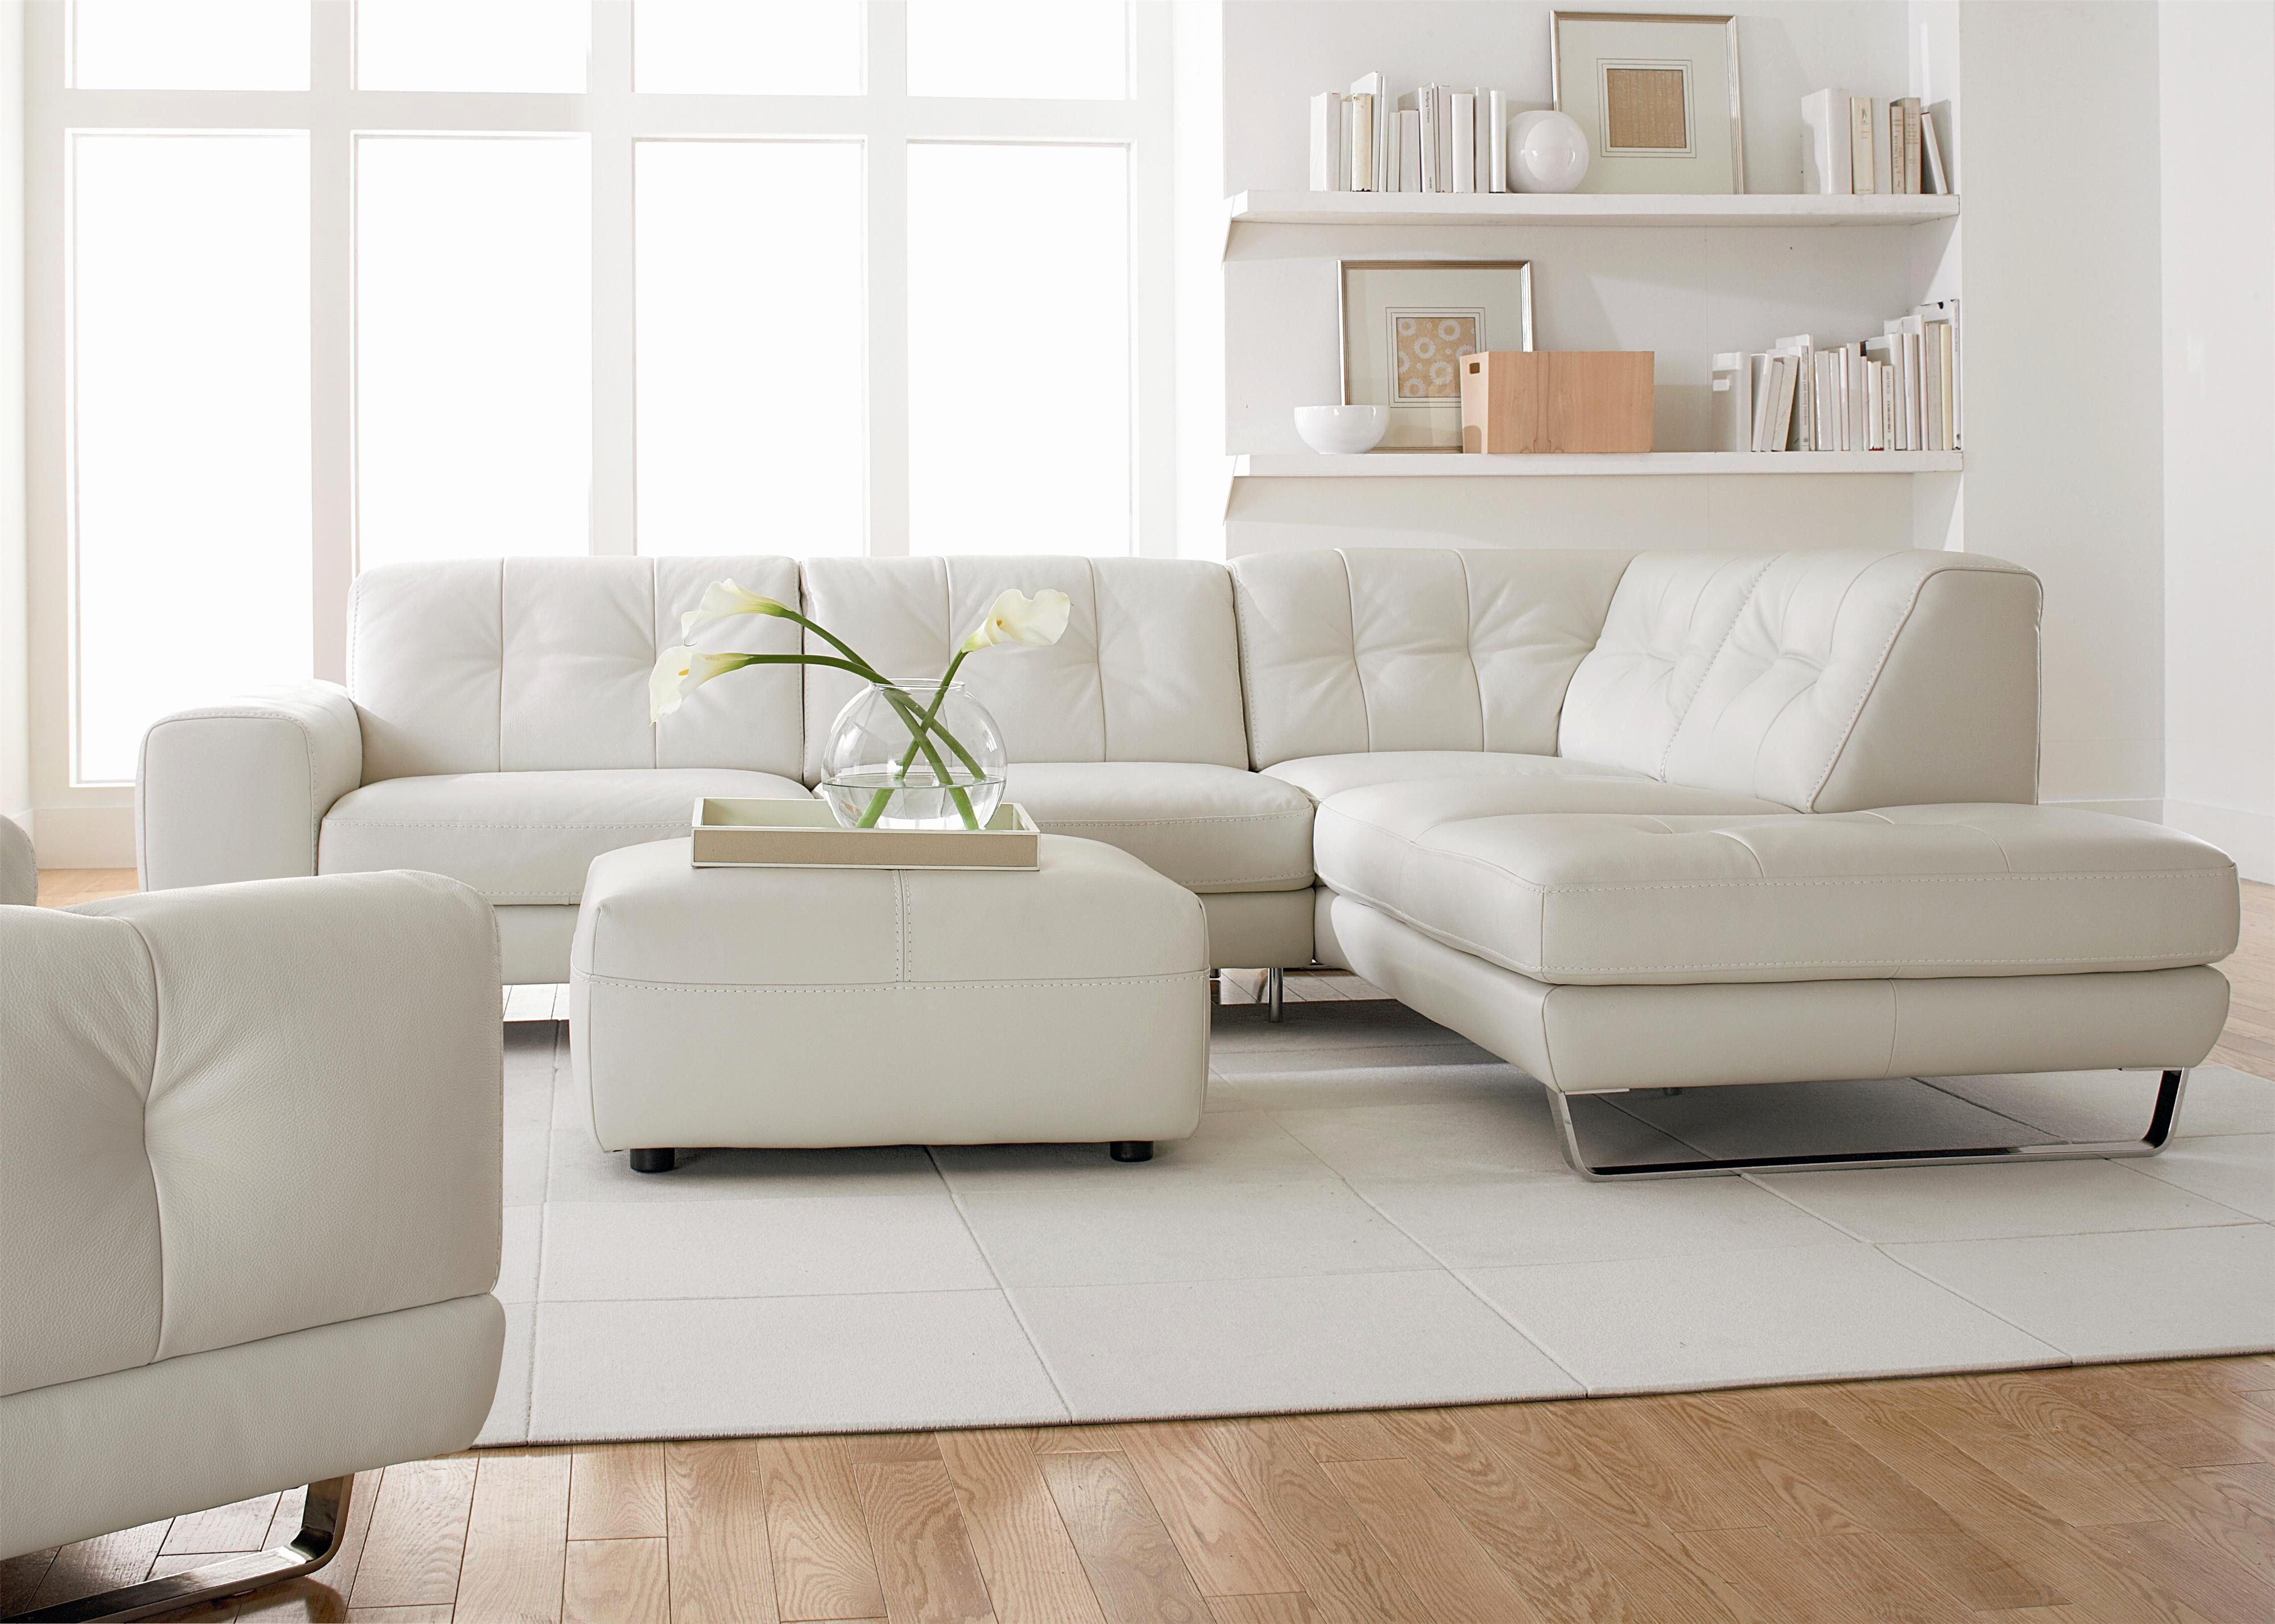 Fresh White Leather Sleeper Sofa Photographs Couch Glamorous Cheap White Couches Fo Modern Furniture Living Room Living Room Sets Furniture Living Room Leather